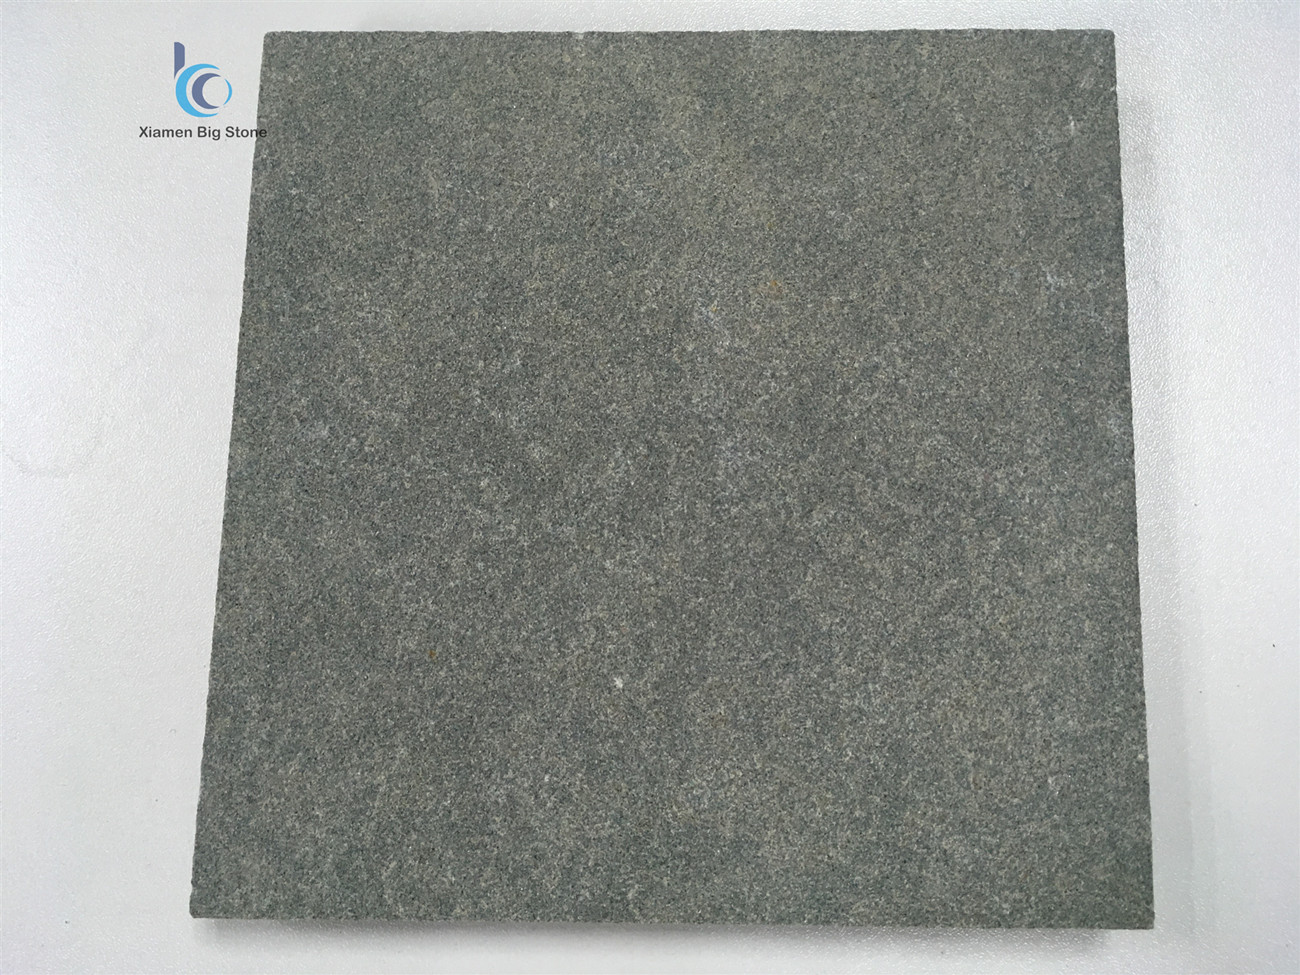 China Green Stone Flamed Brushed